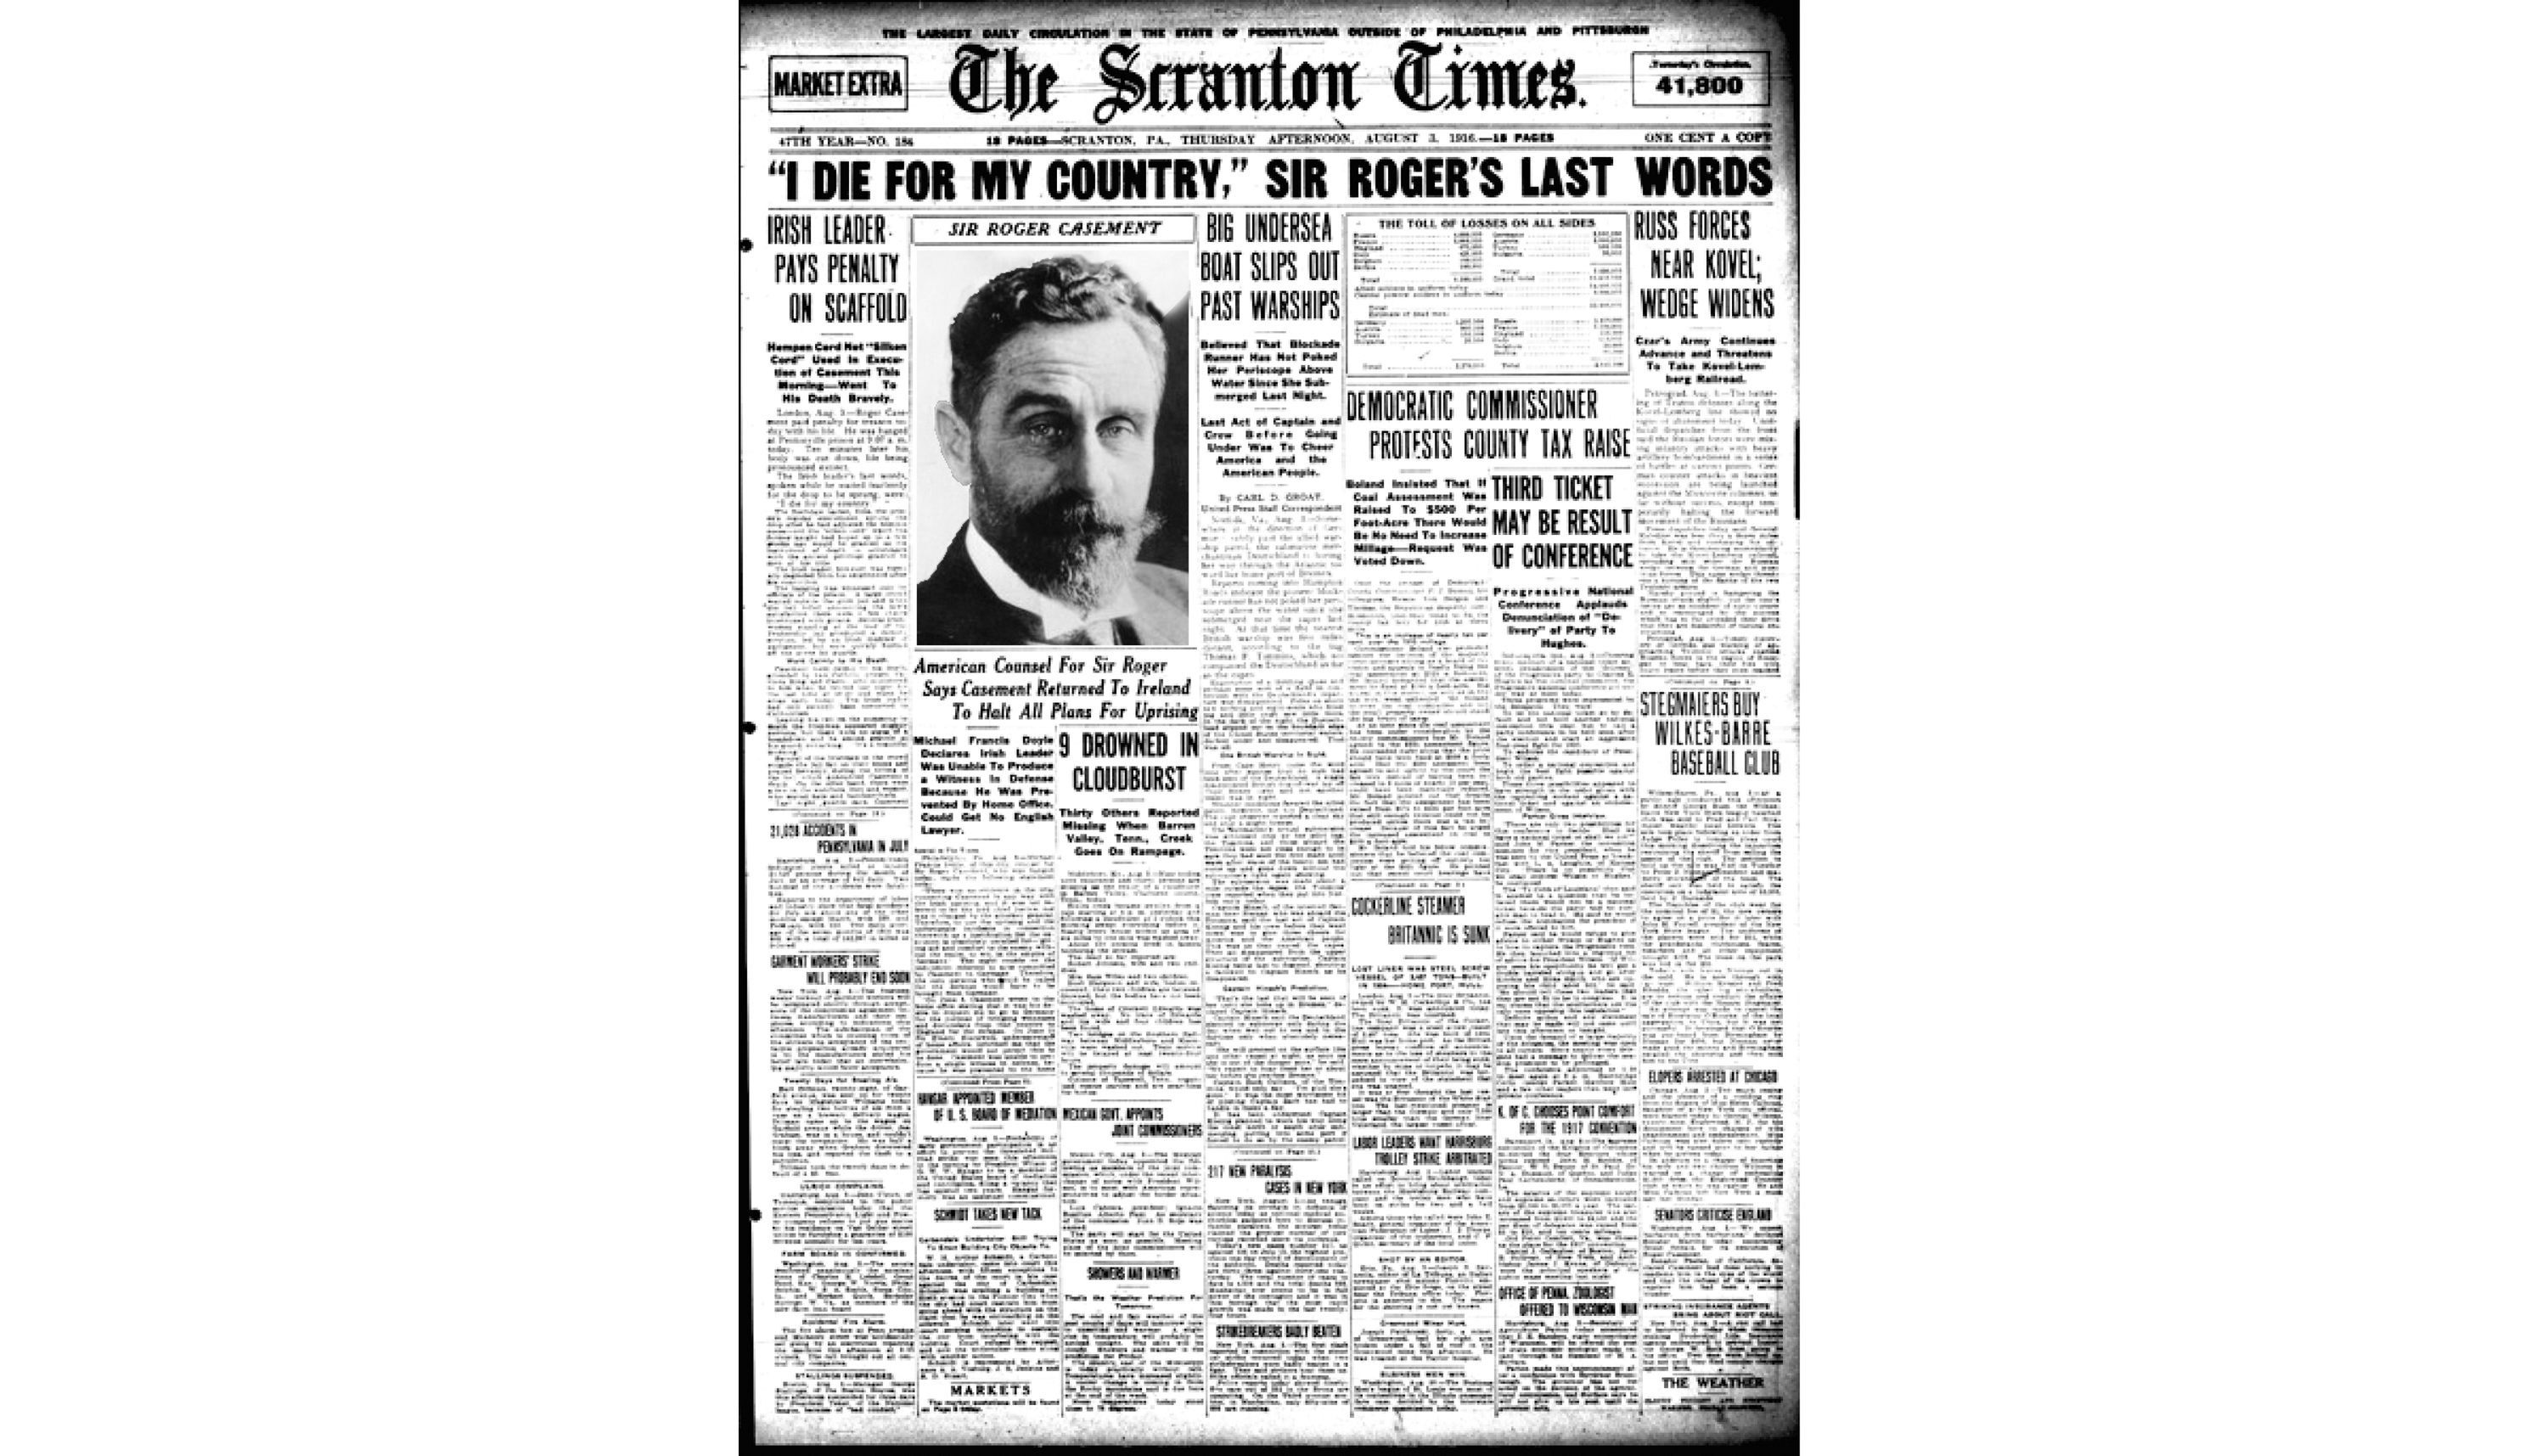 August 1, 1916: The Scranton Times reported on the hanging of Sir Roger Casement.